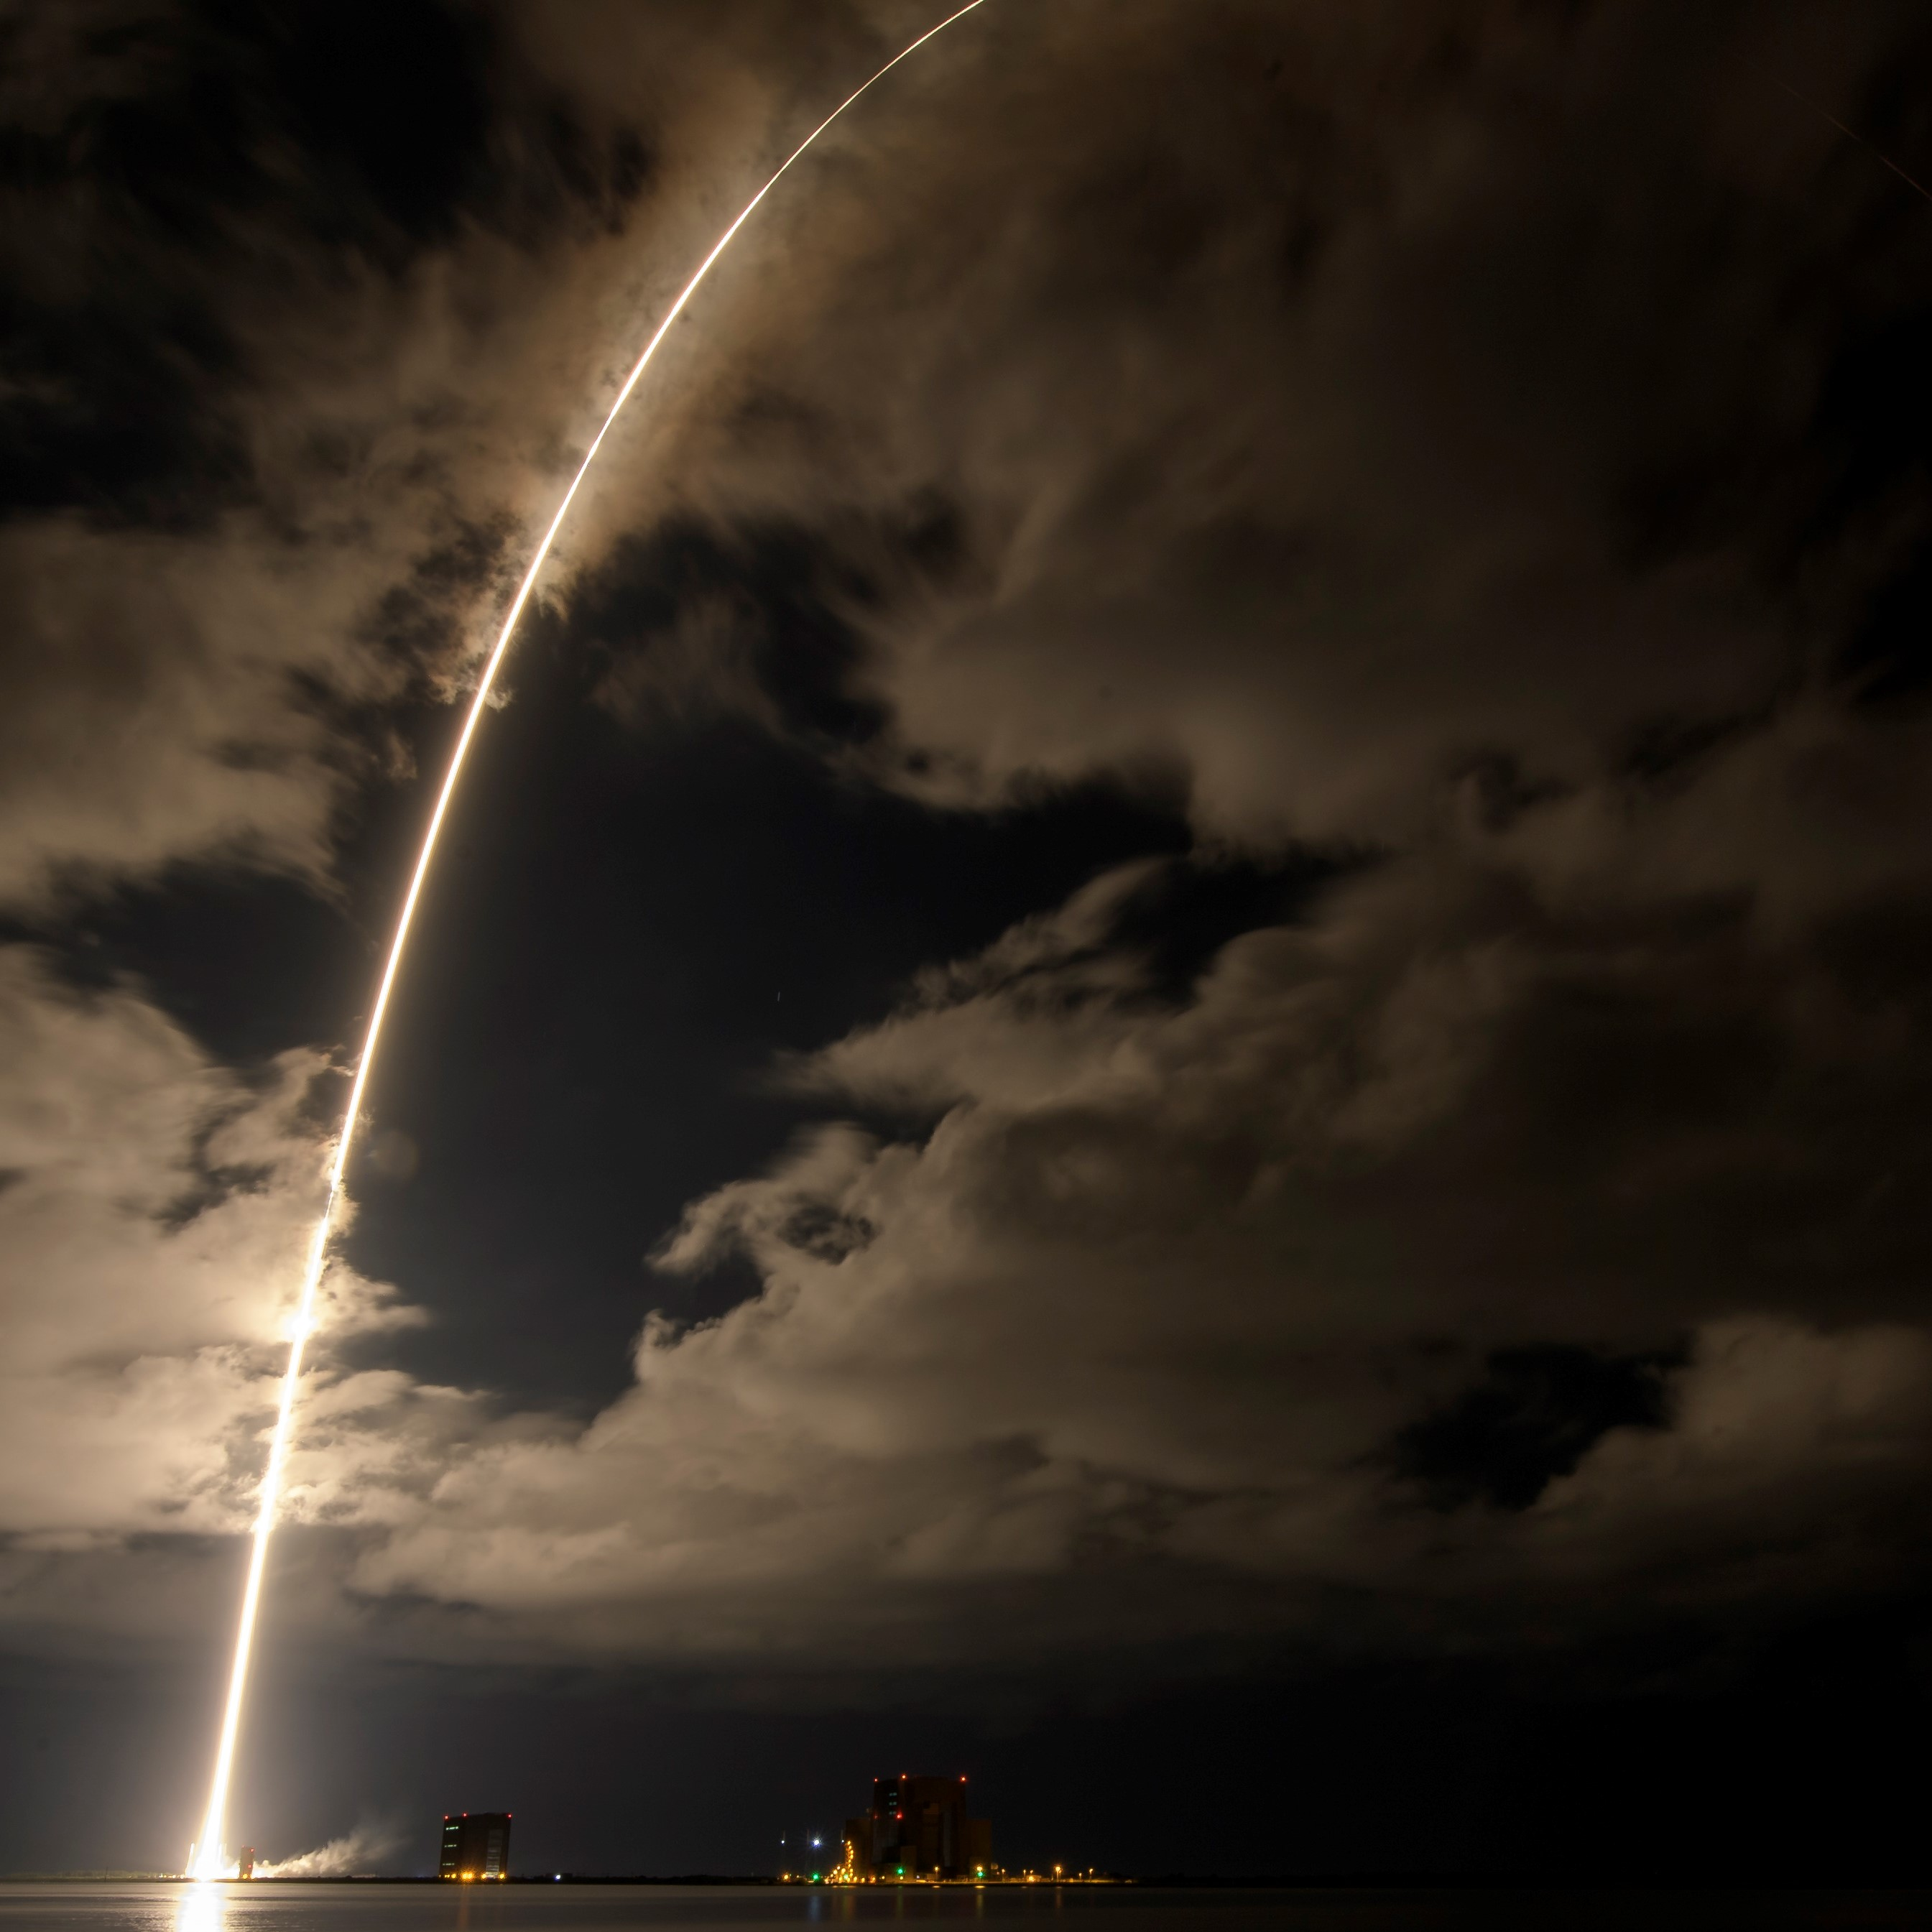 A United Launch Alliance Atlas V rocket with the Lucy spacecraft aboard is seen in this 2 minute and 30 second exposure photograph as it launches from Space Launch Complex 41, Saturday, Oct. 16, 2021, at Cape Canaveral Space Force Station in Florida.